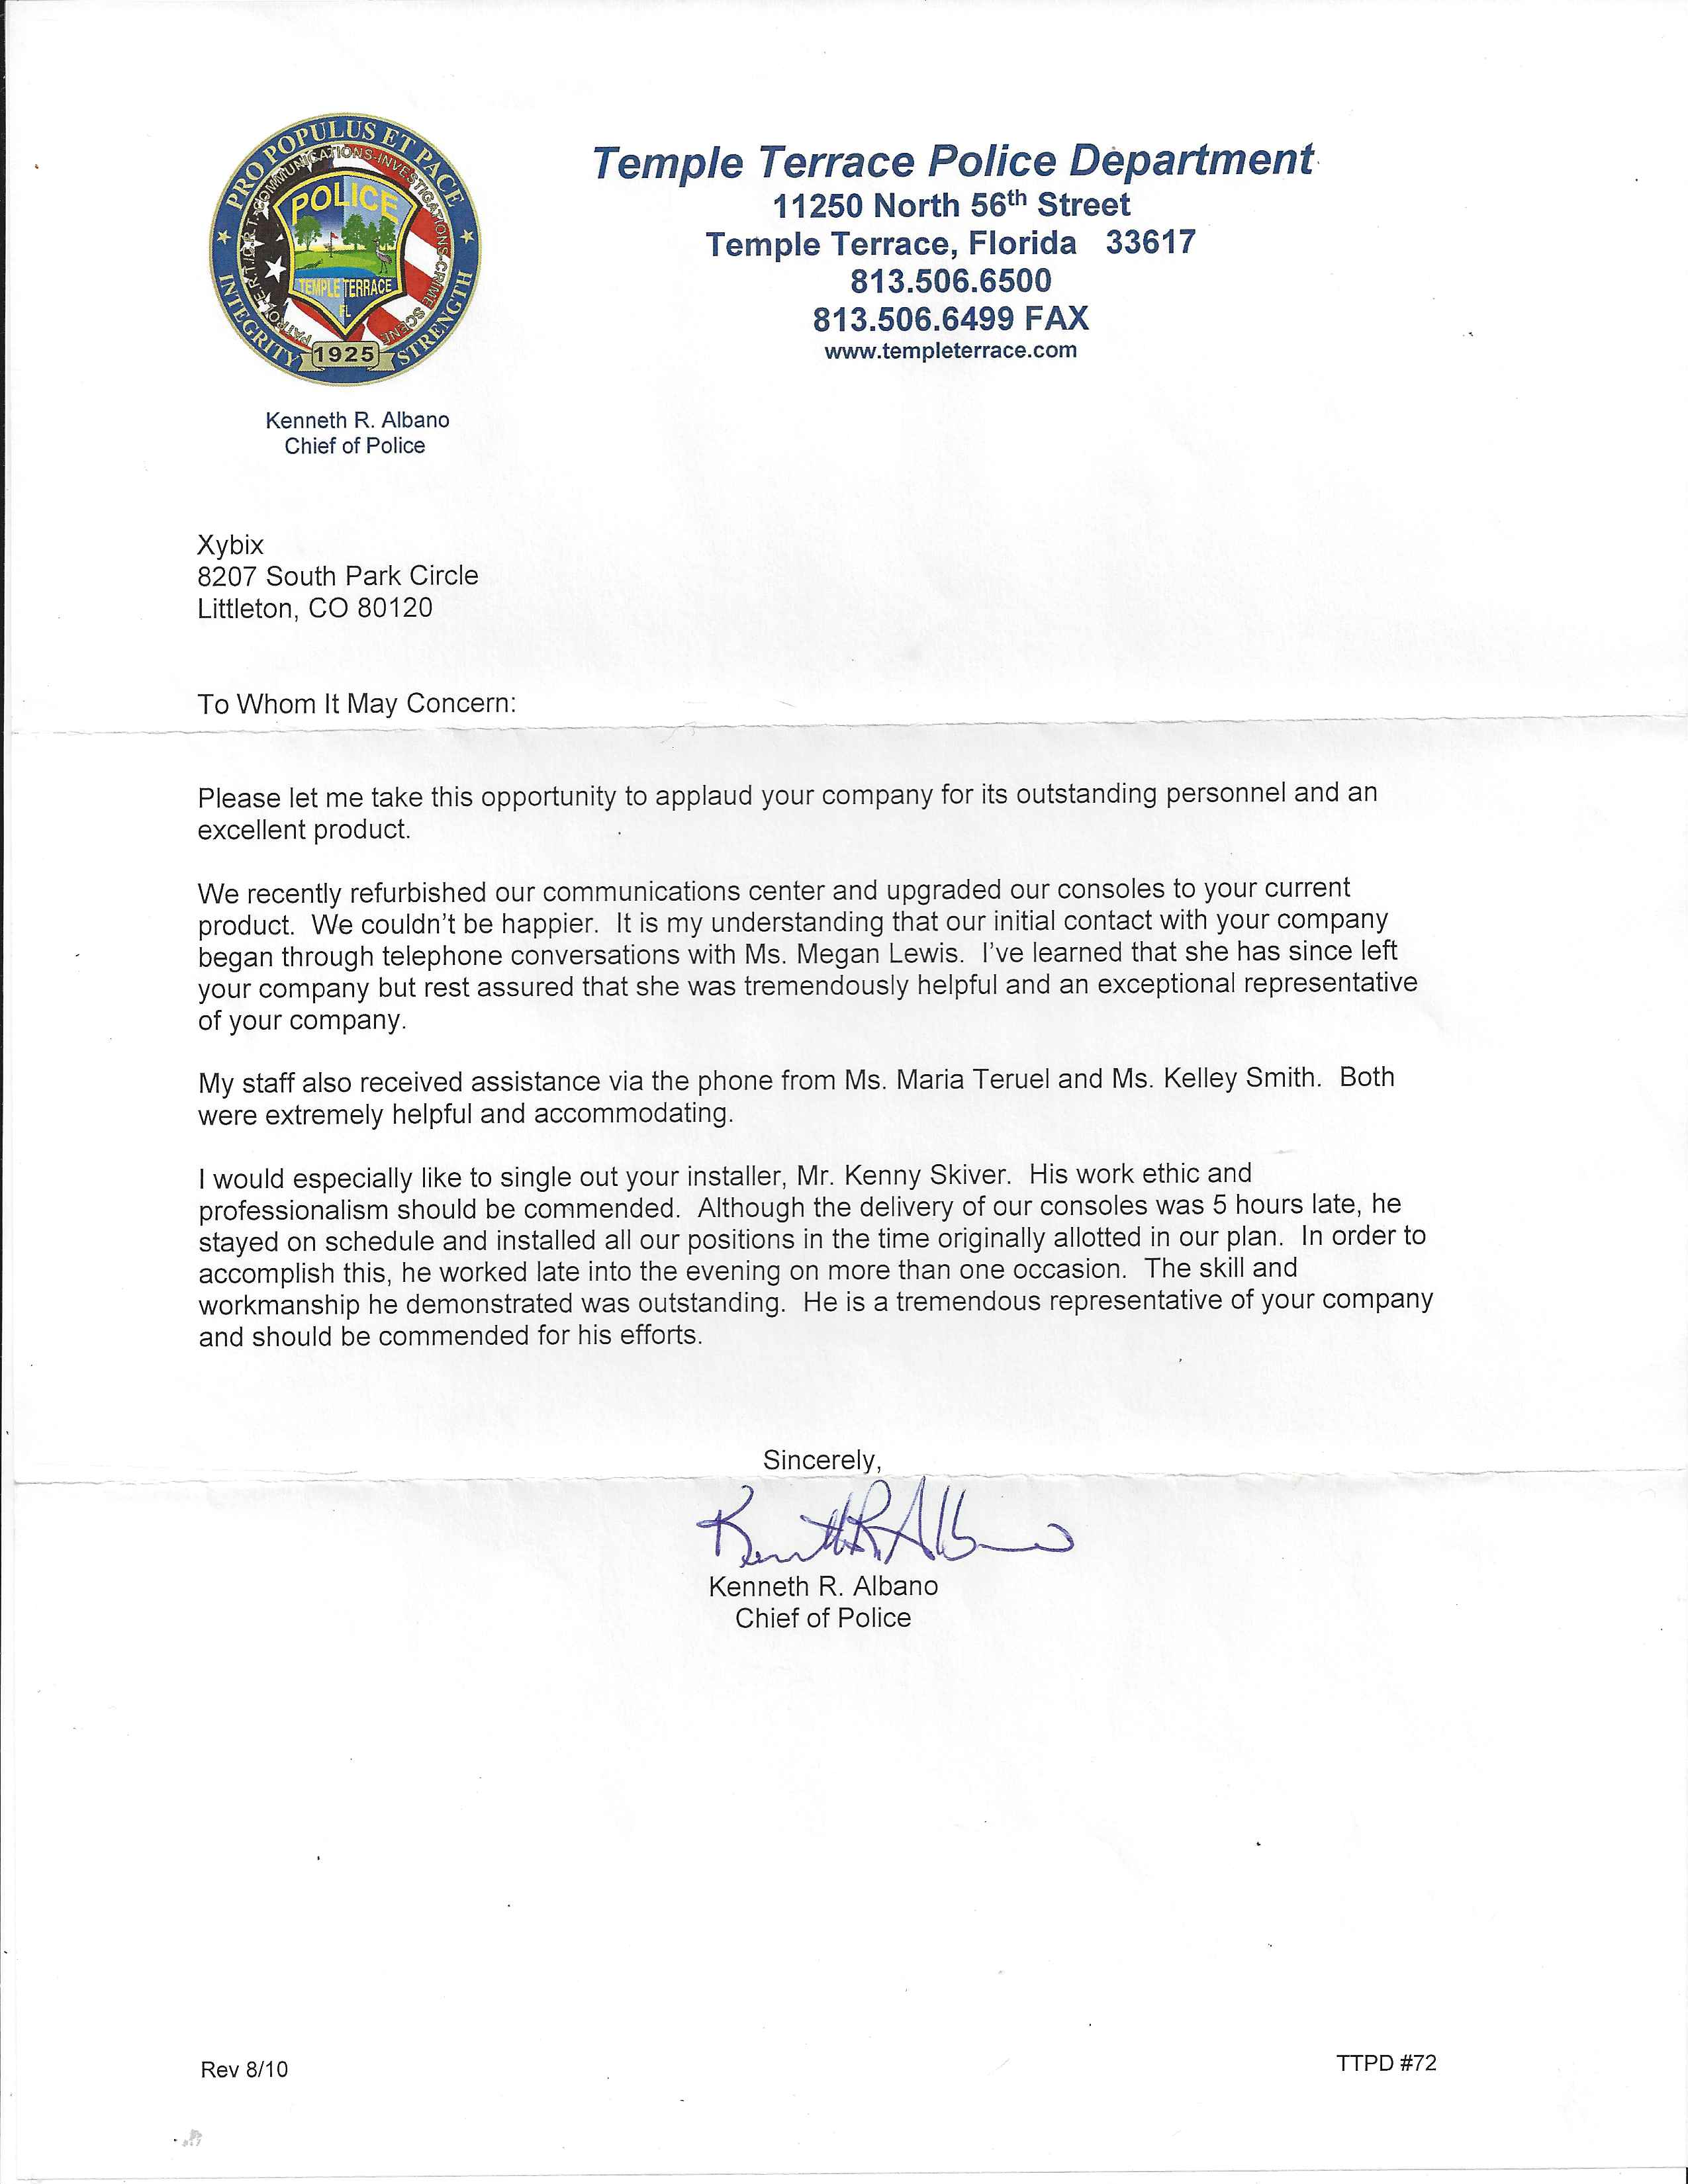 Temple Terrace Police Department Letter